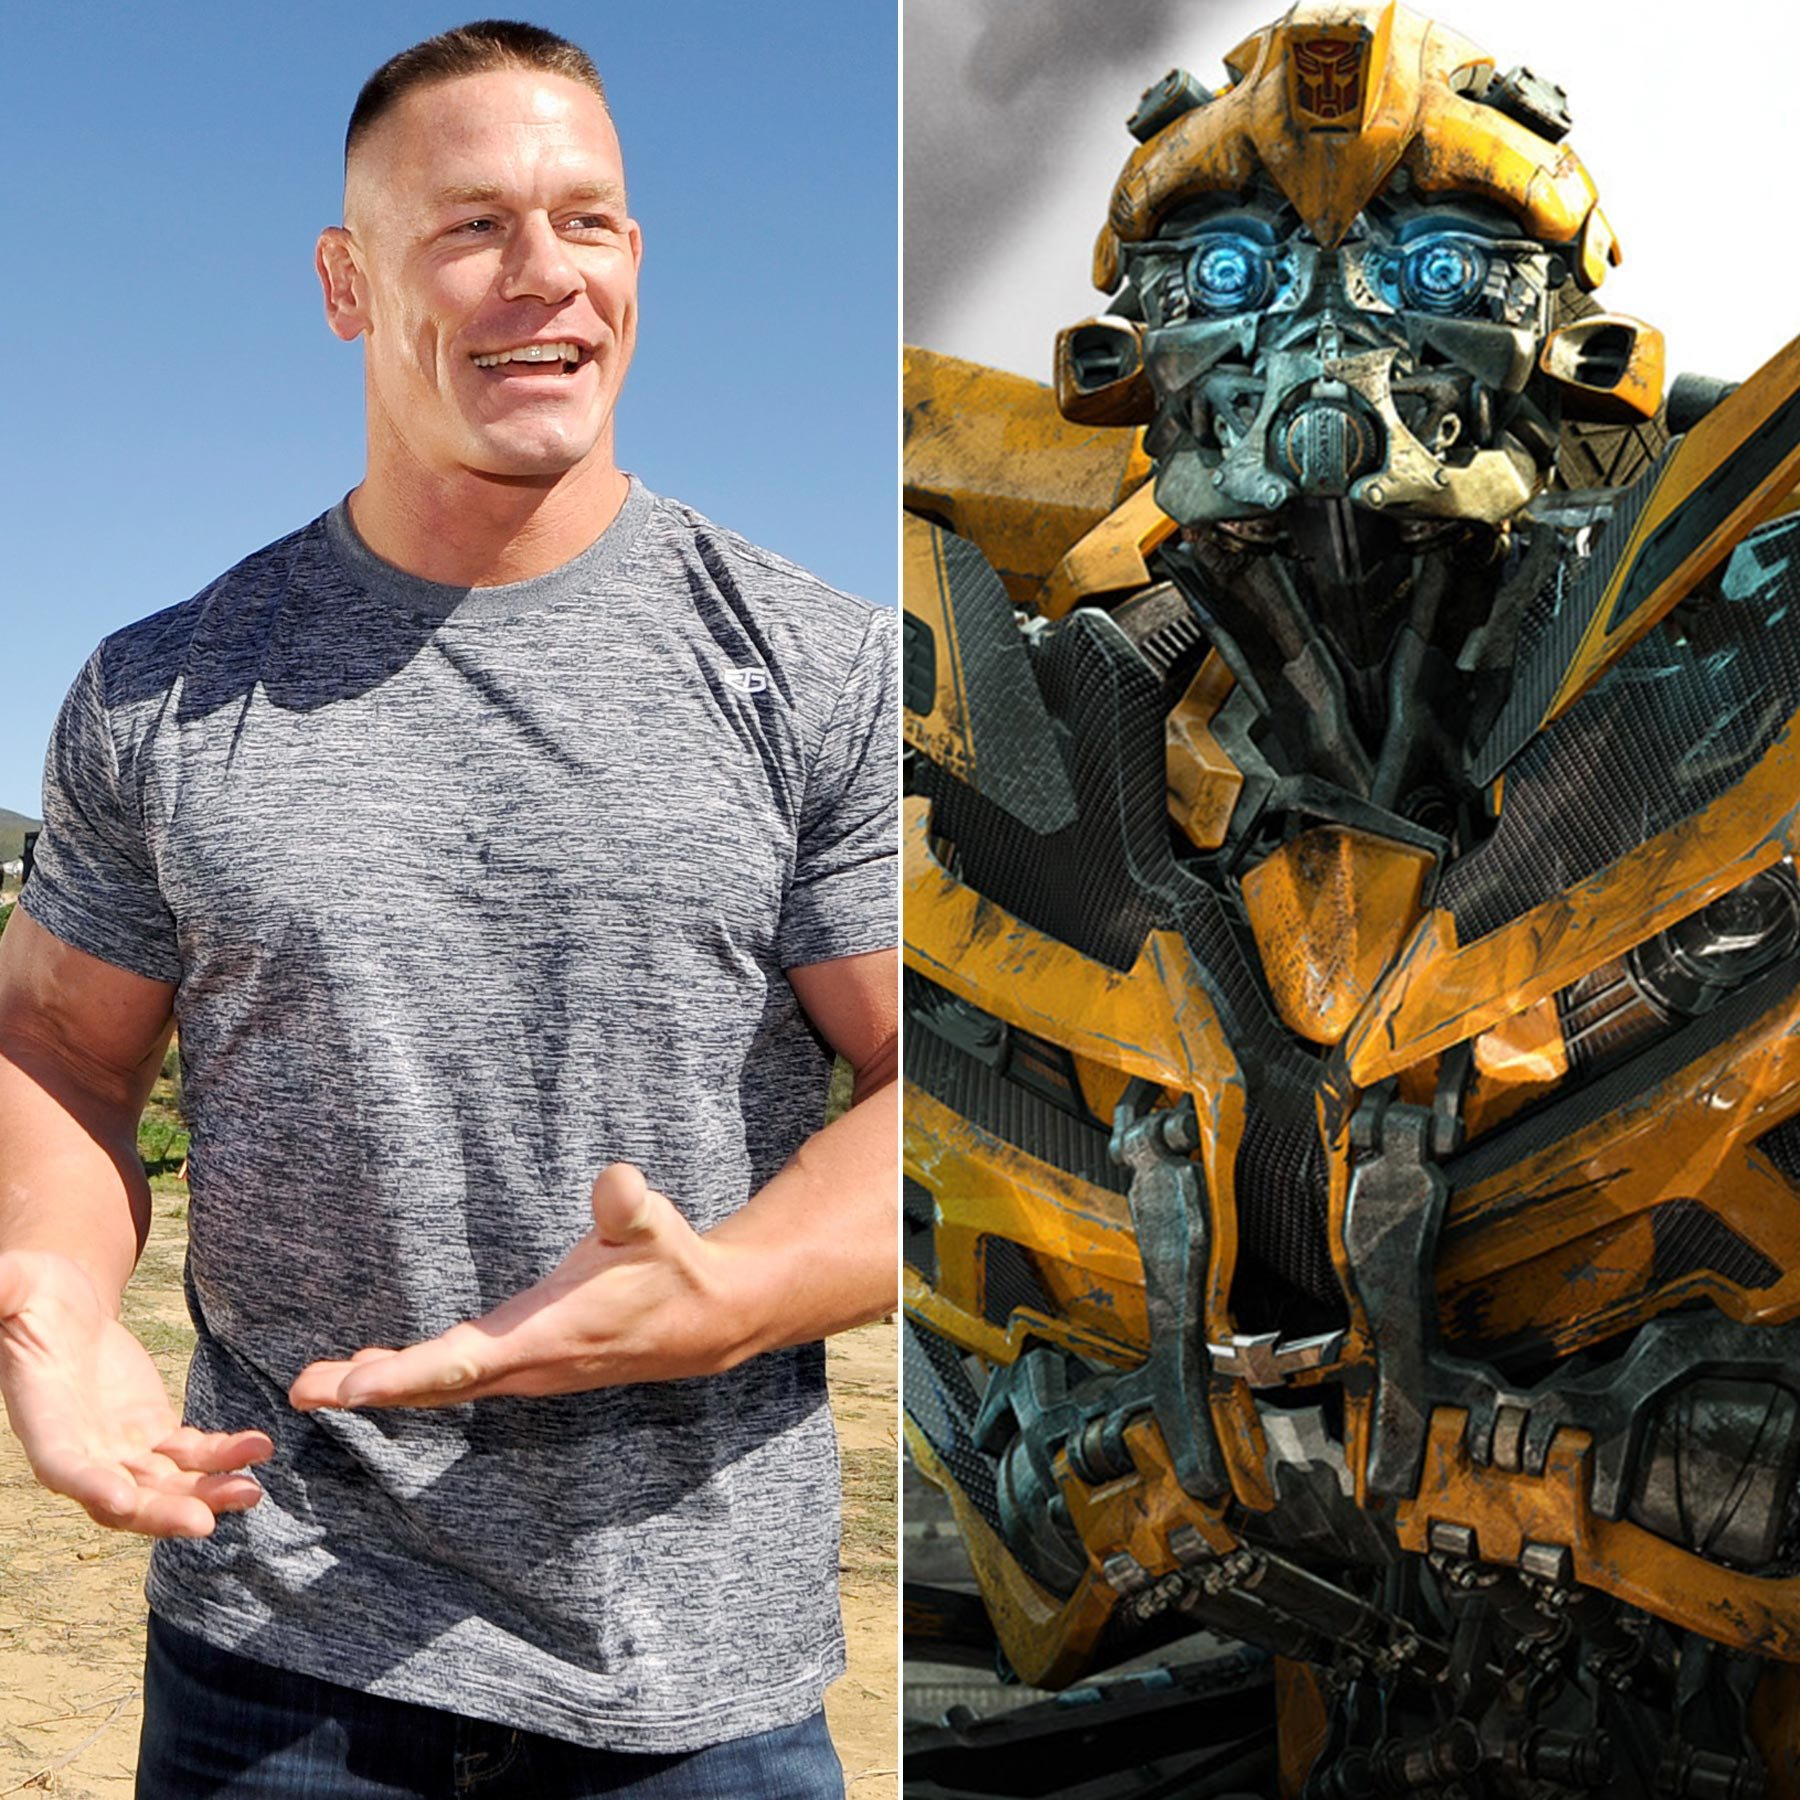 Transformers John Cena Has Been Added To The Cast-4559